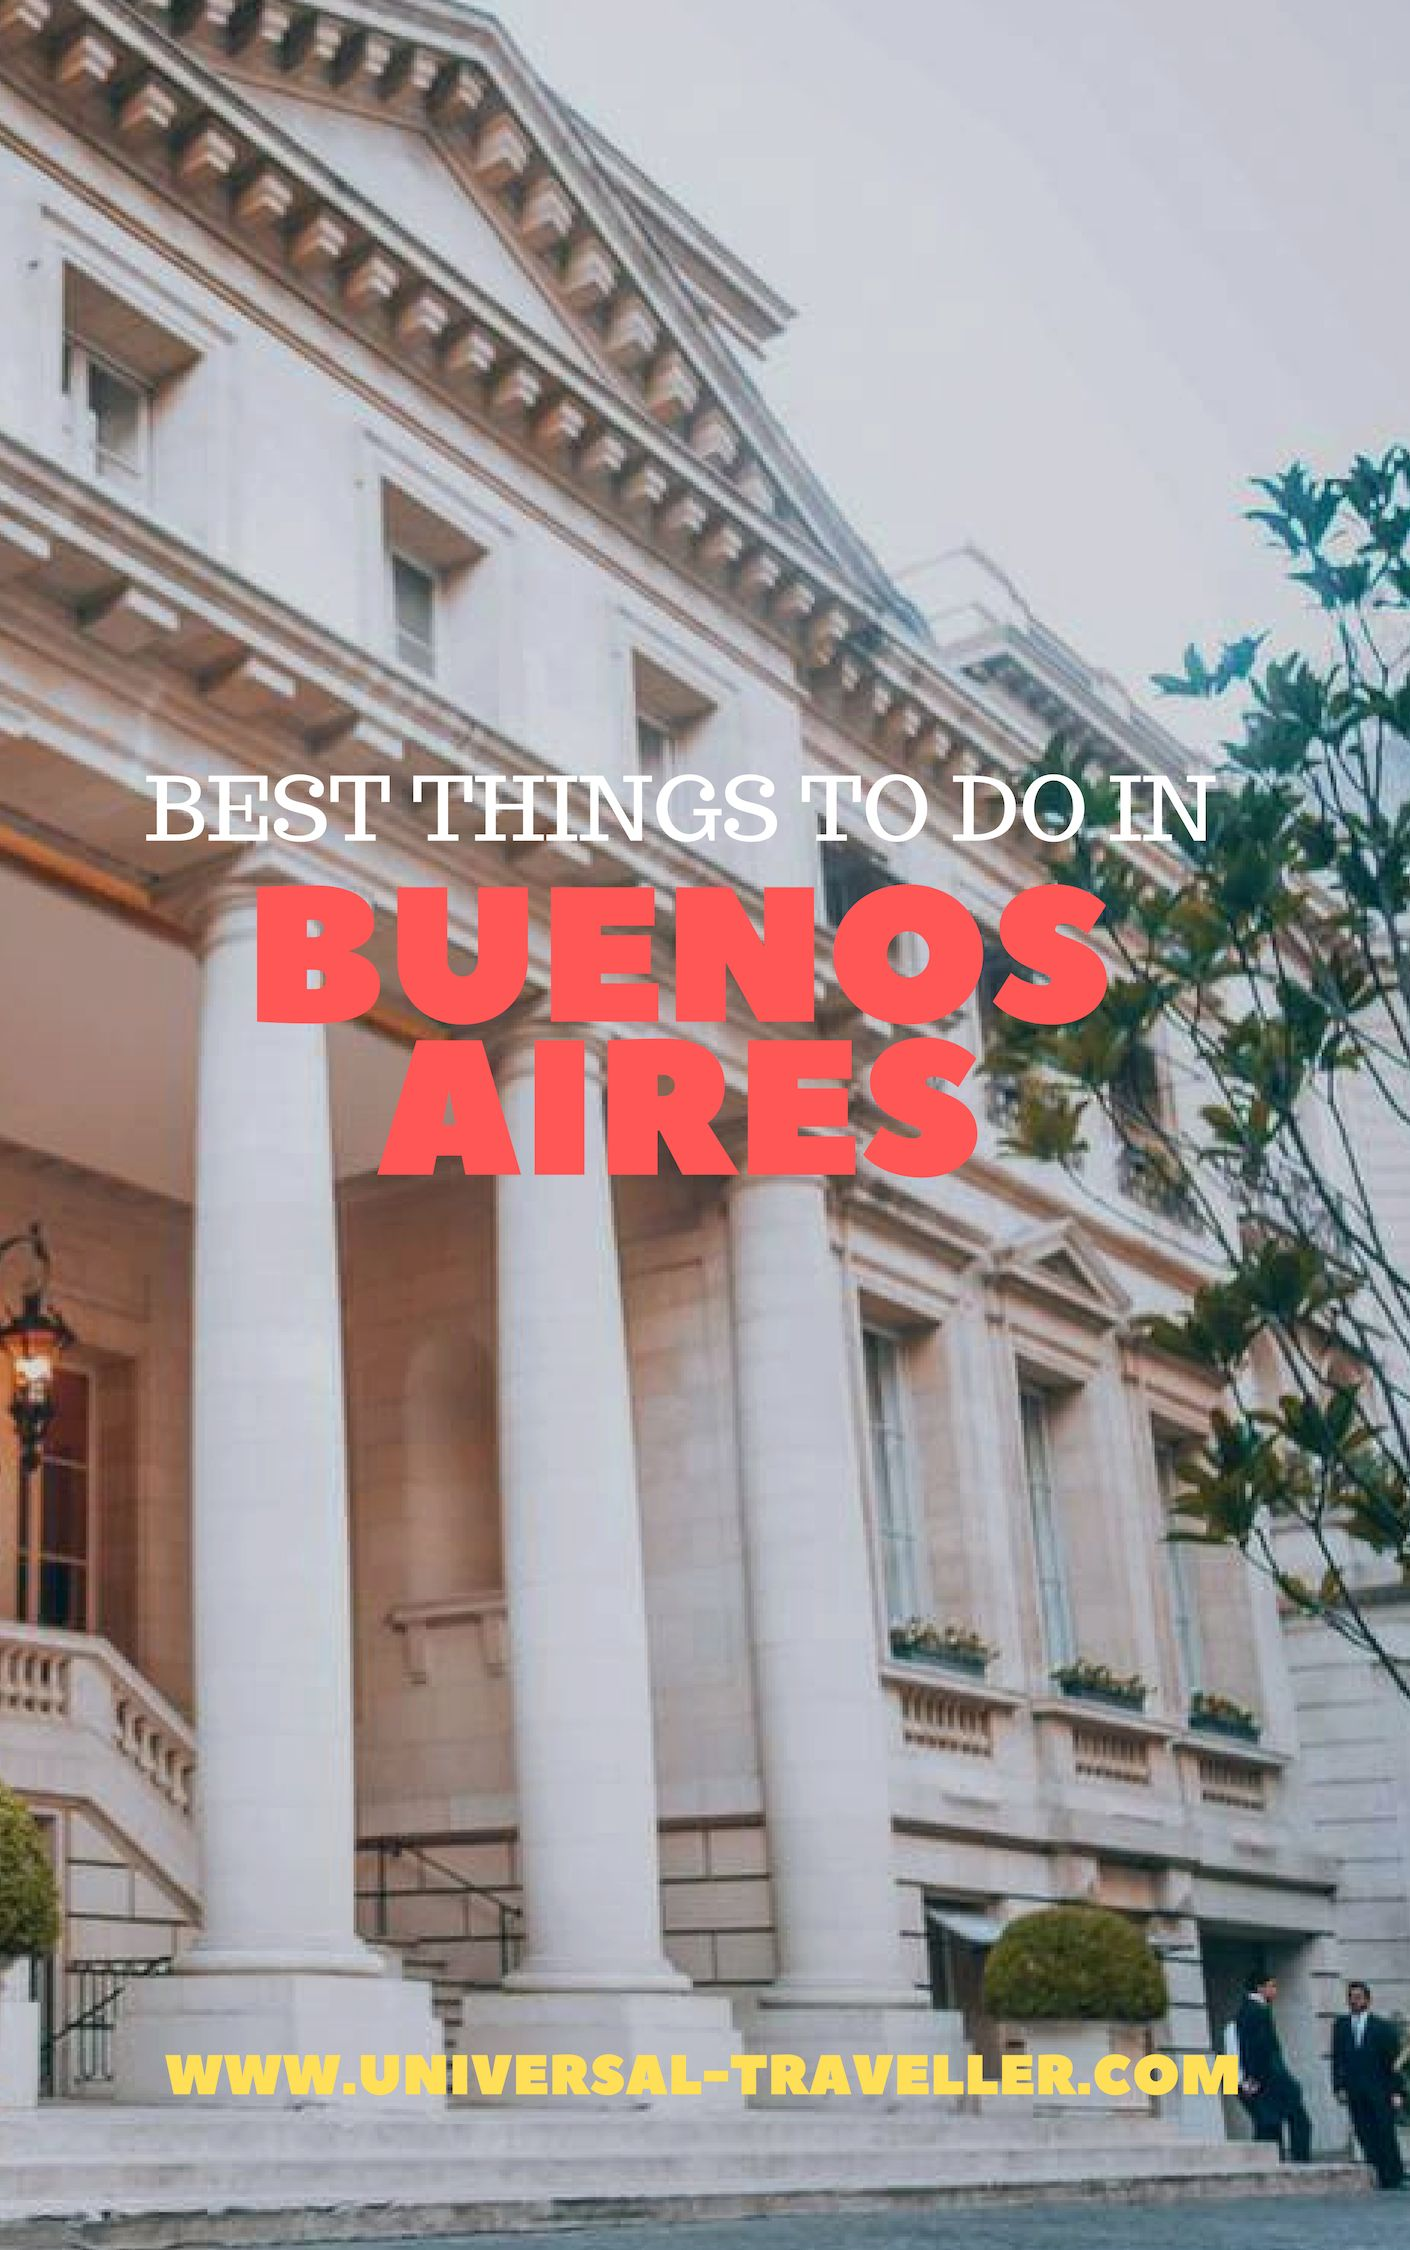 Things to do in buenos aires activities attractions 1 graffiti mundo street art tour 2 have a beer at a microbrewery 3 the cementerio de la recoleta